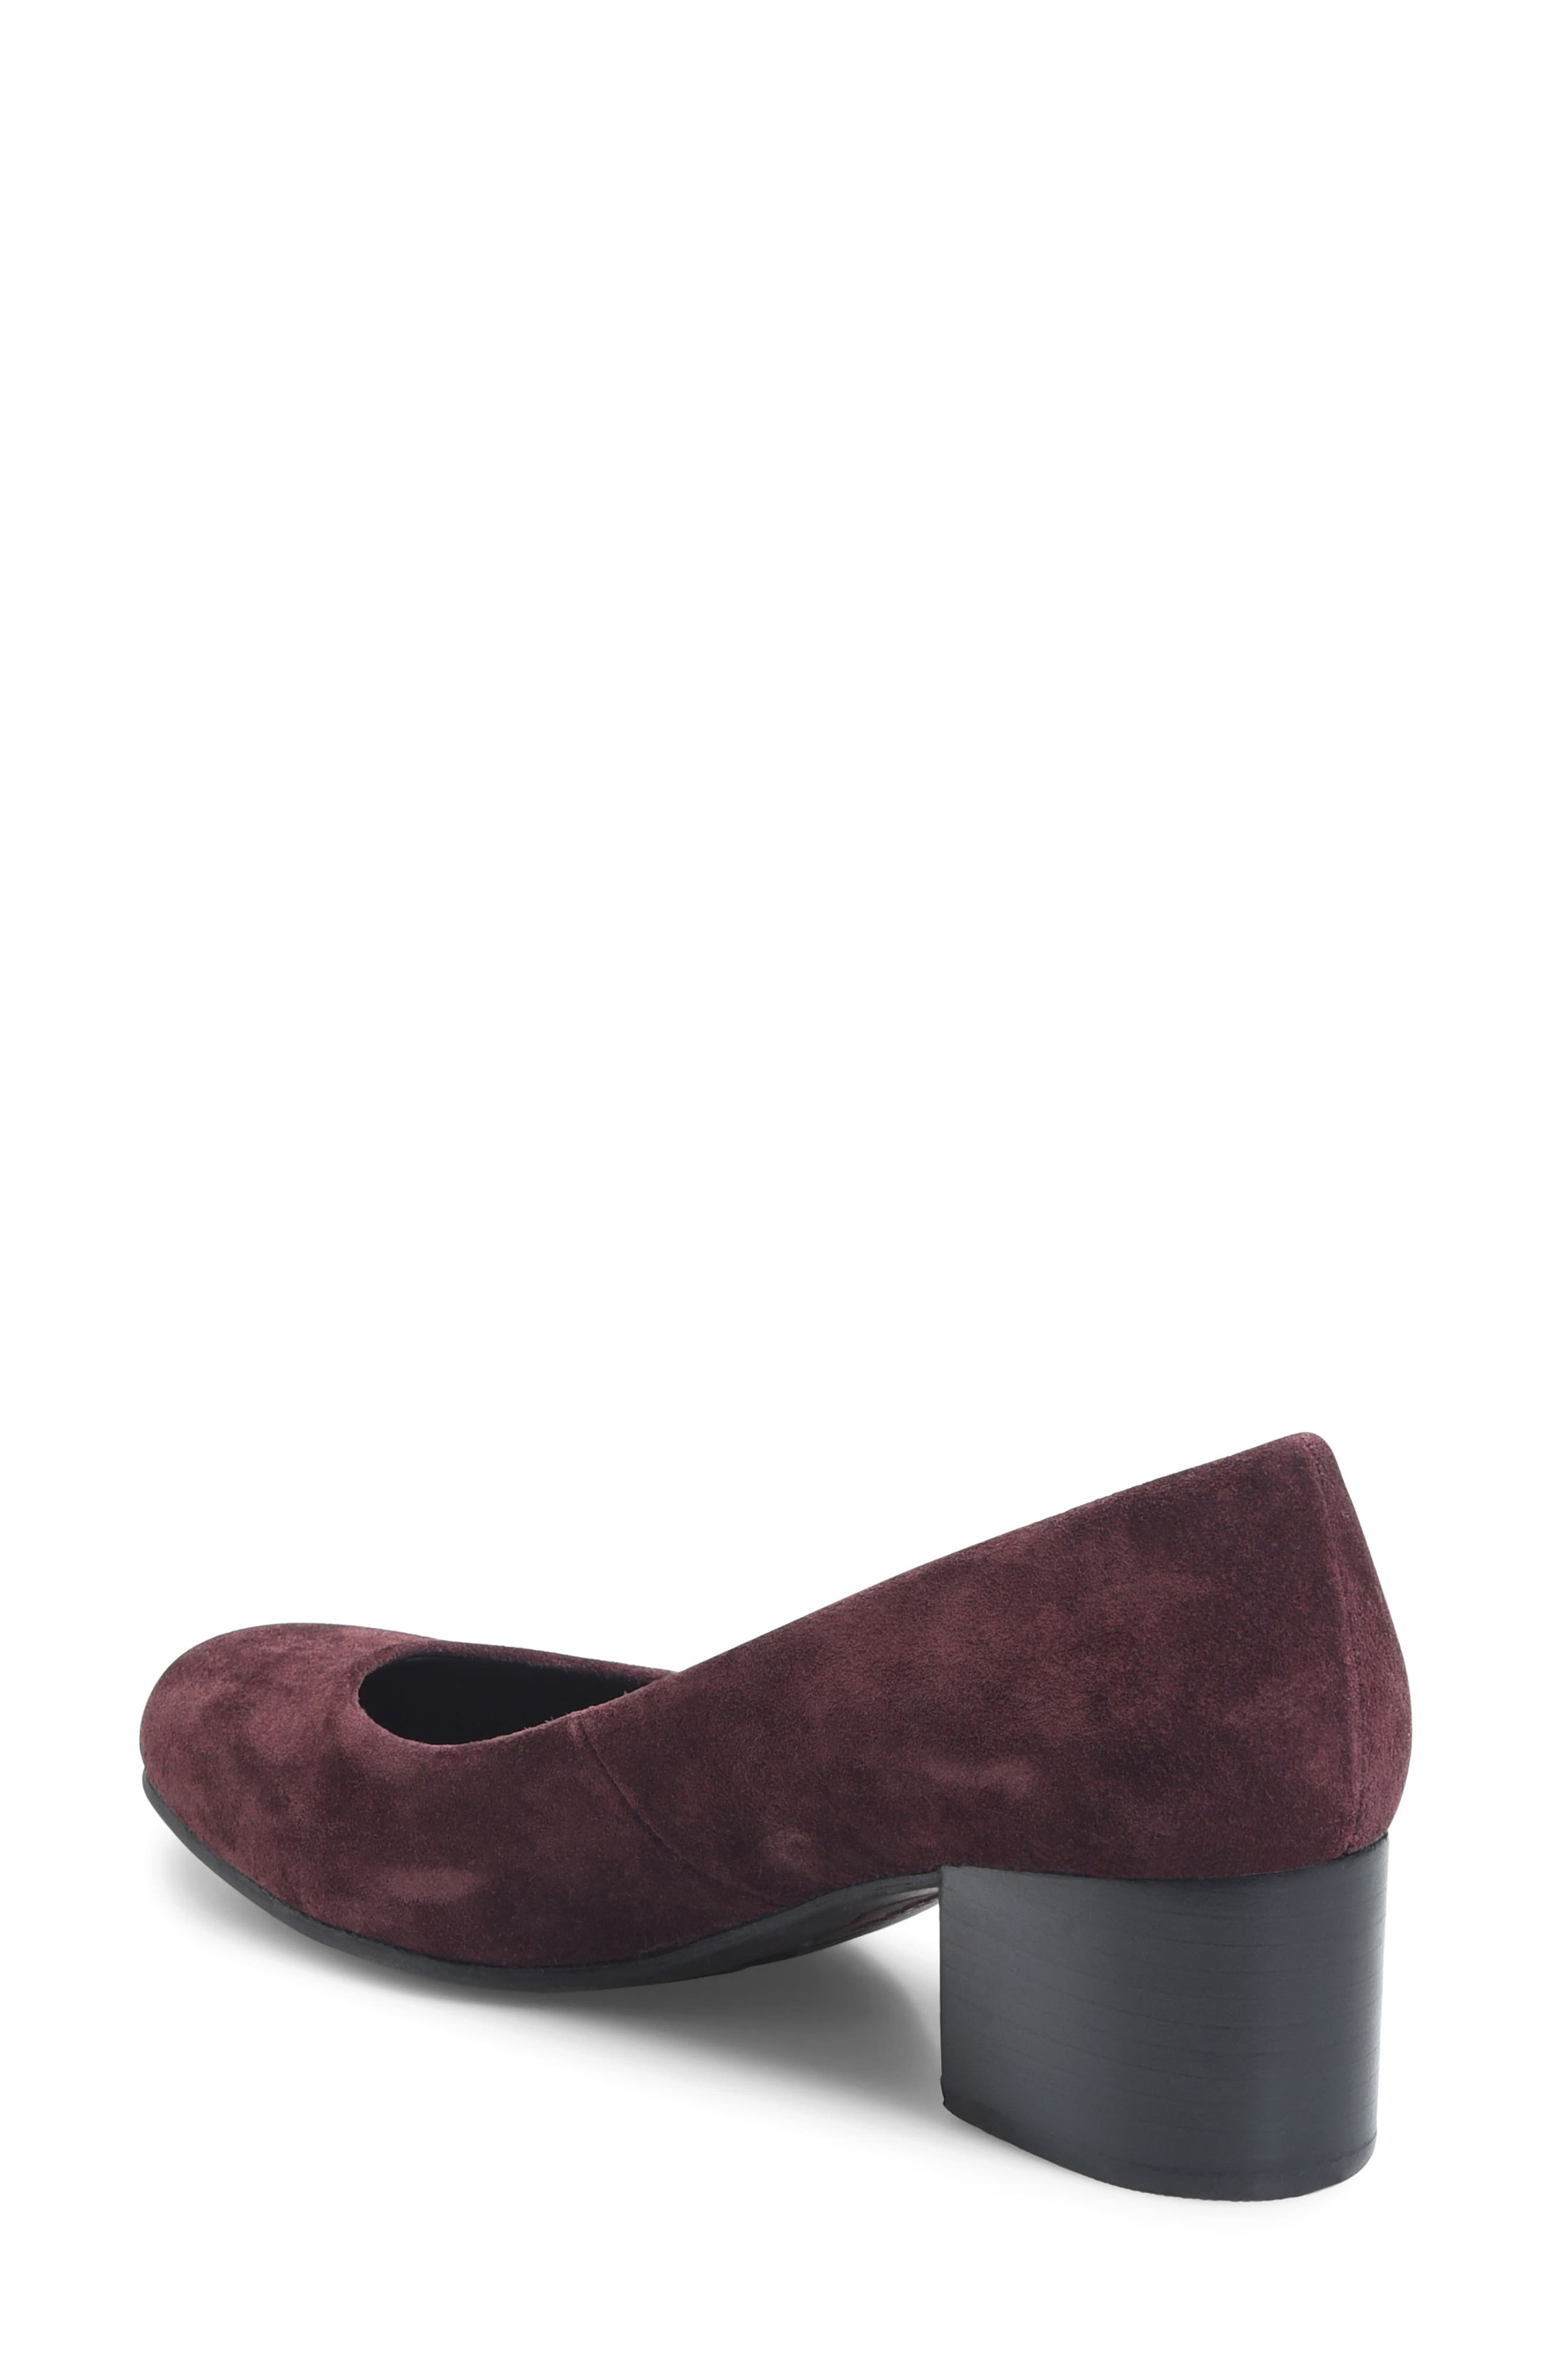 Amery Pump,                             Alternate thumbnail 2, color,                             Burgundy Suede